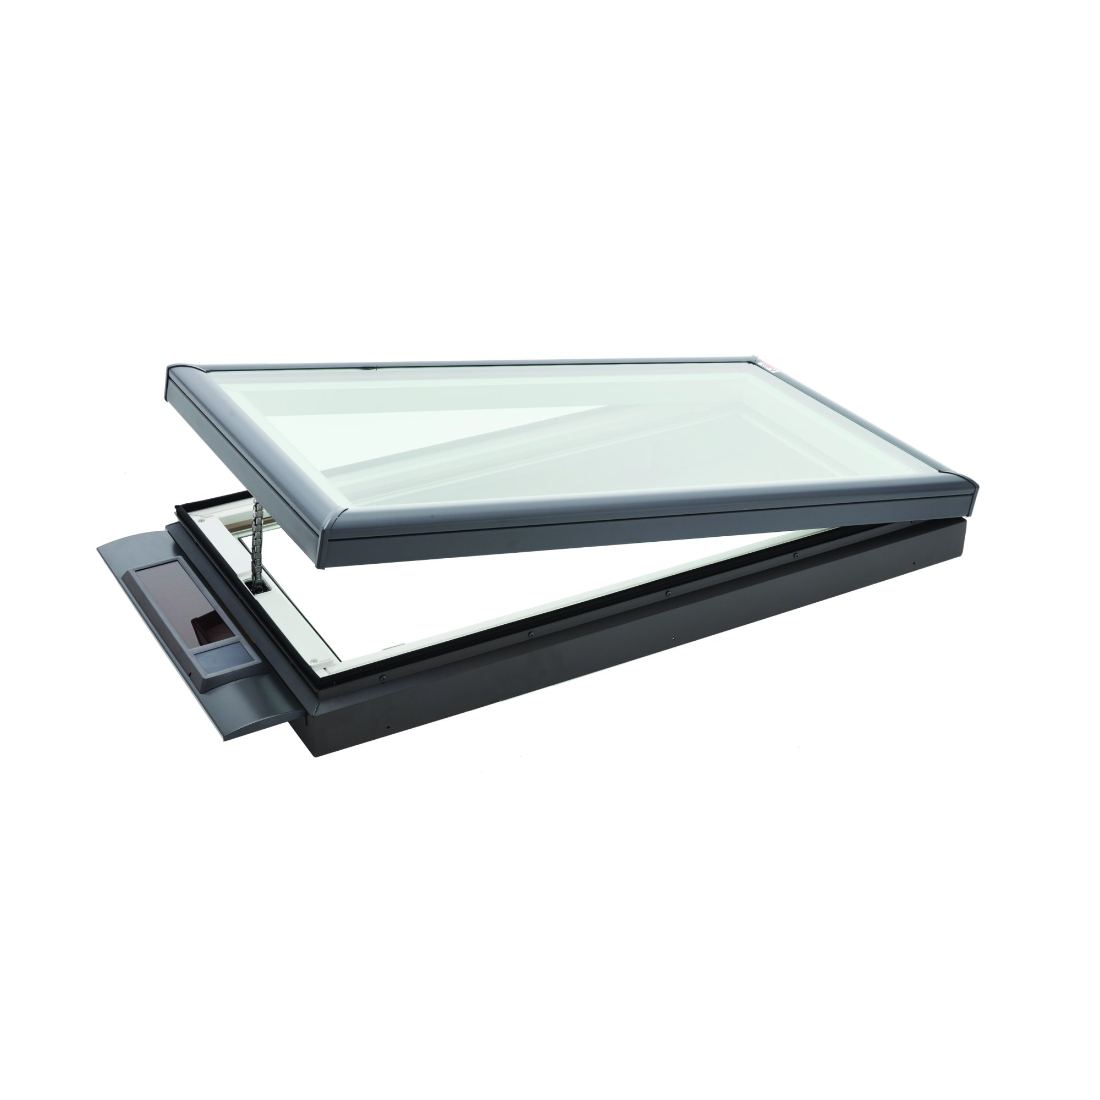 Low Pitch Solar Opening Skylight 1302 x 1302mm